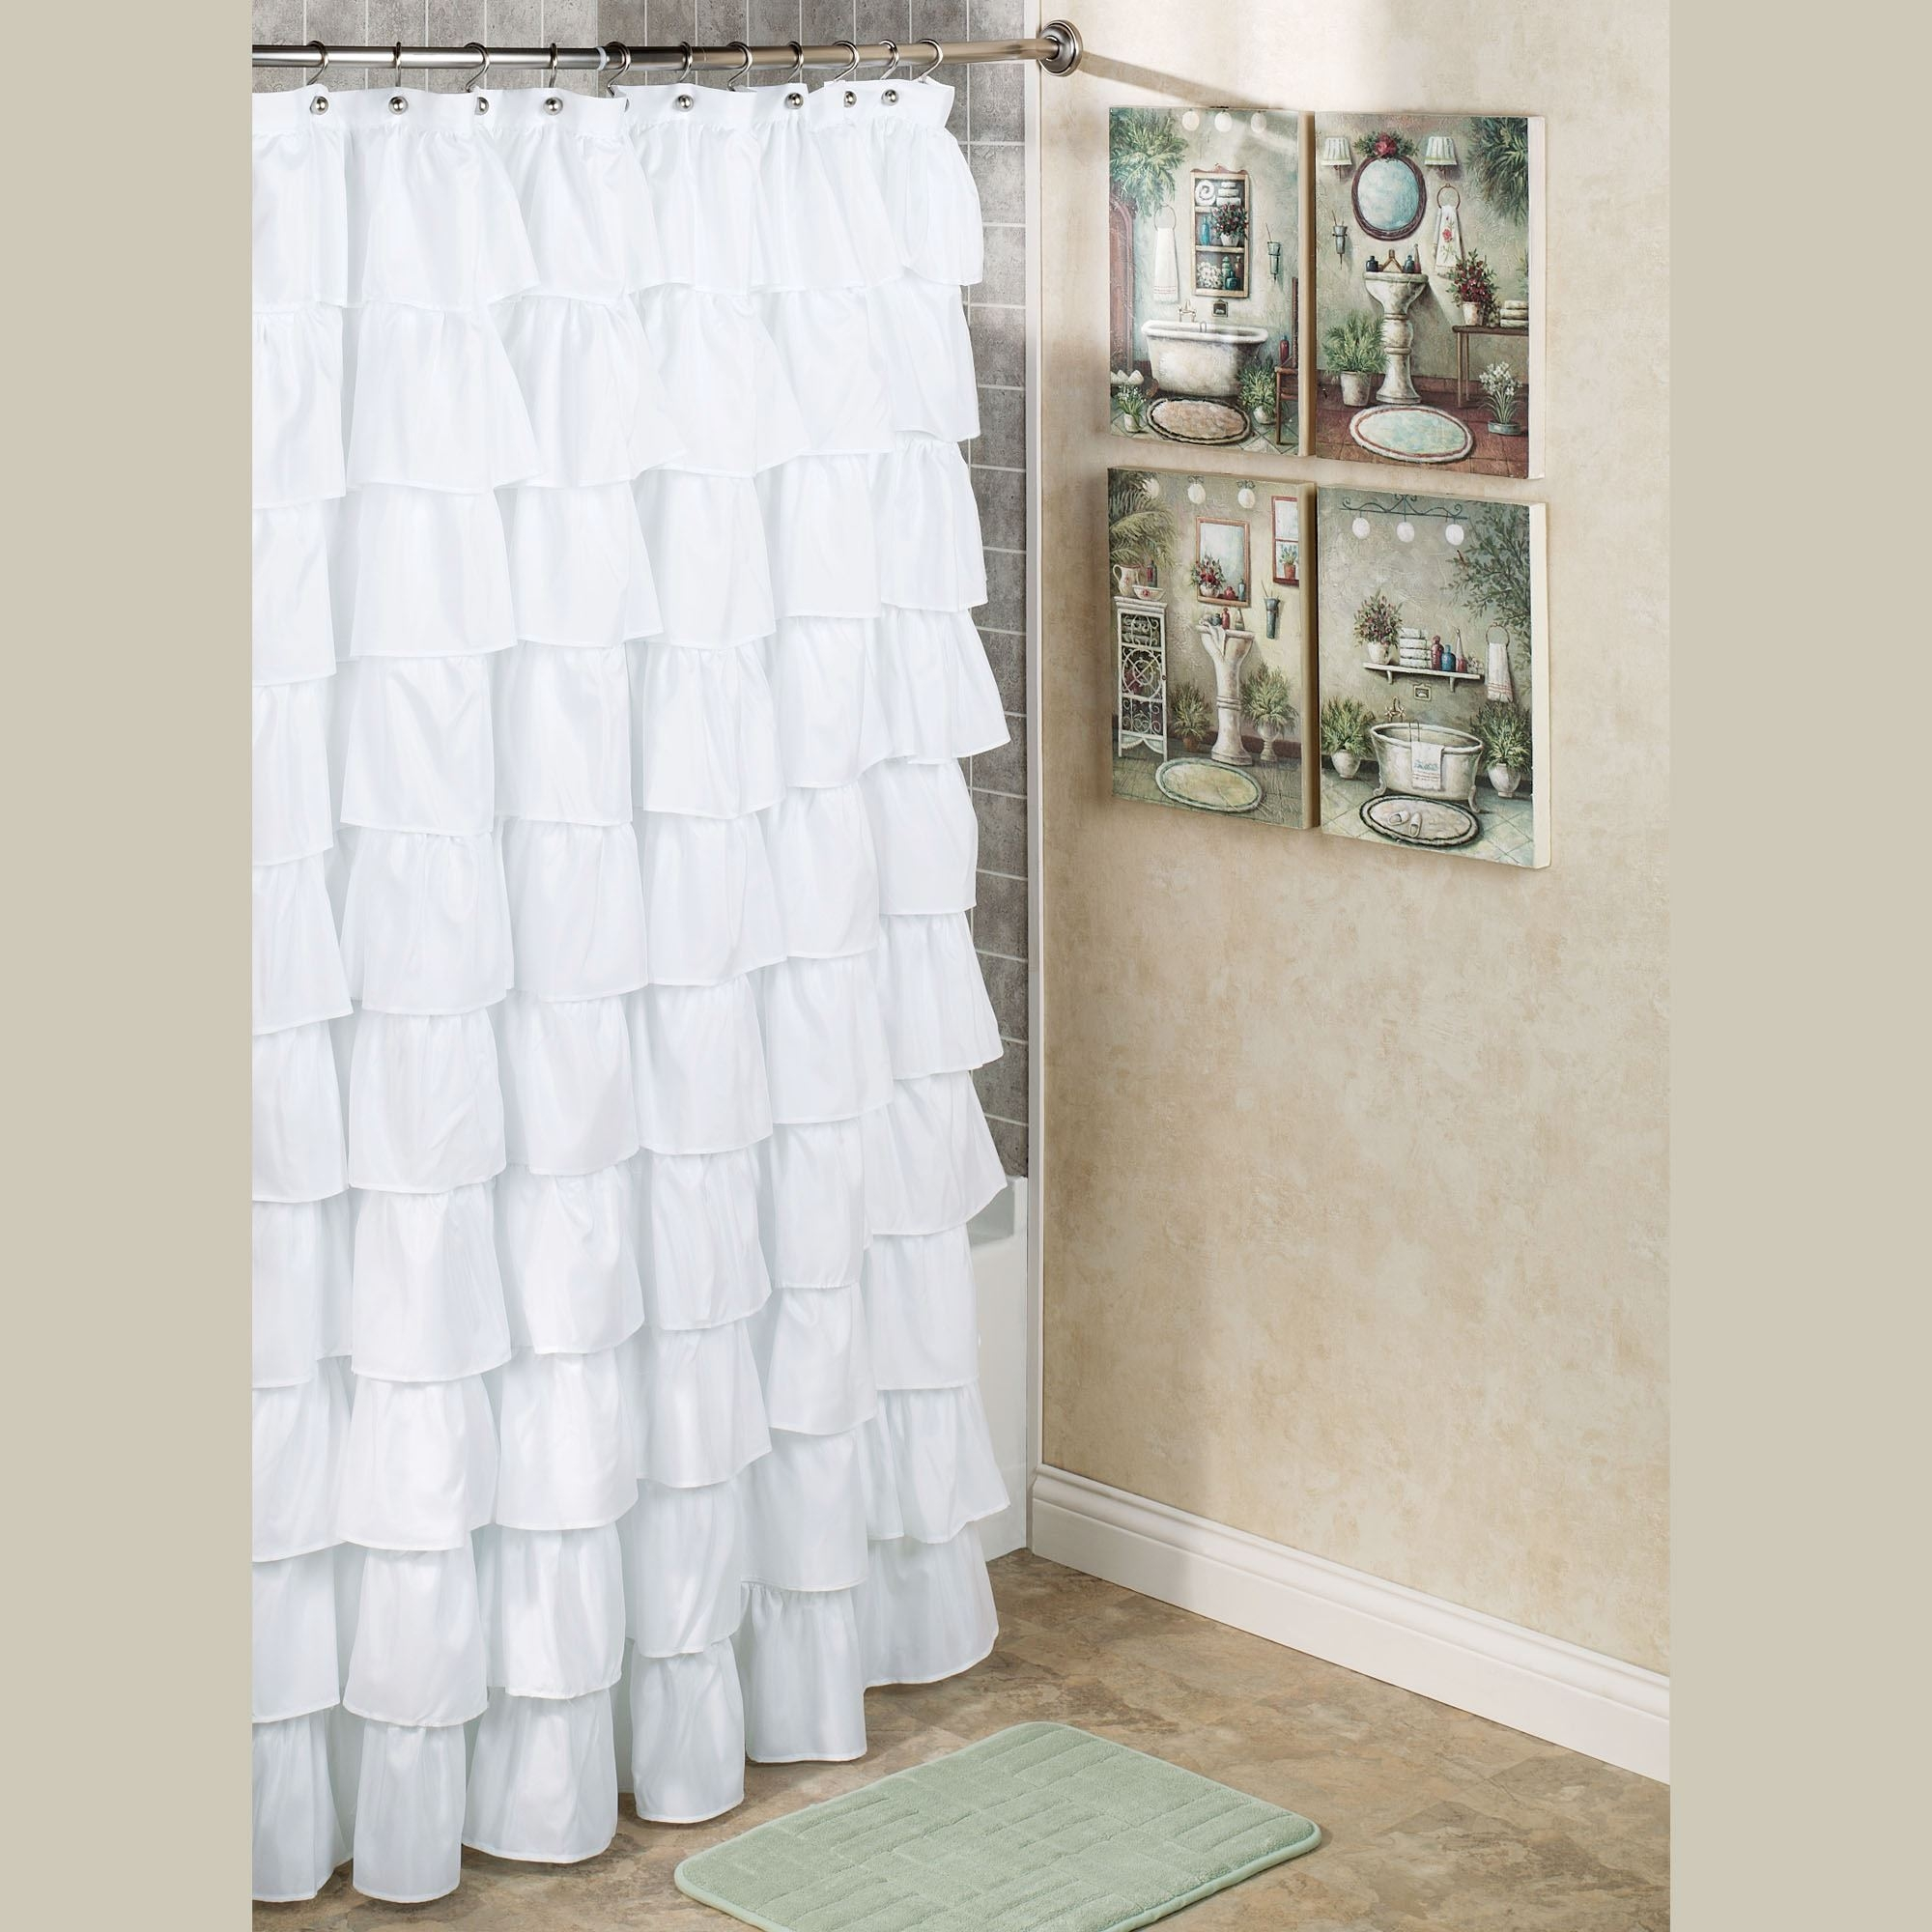 Maribella White Ruffled Shower Curtain Inside White Ruffle Curtains (View 3 of 25)